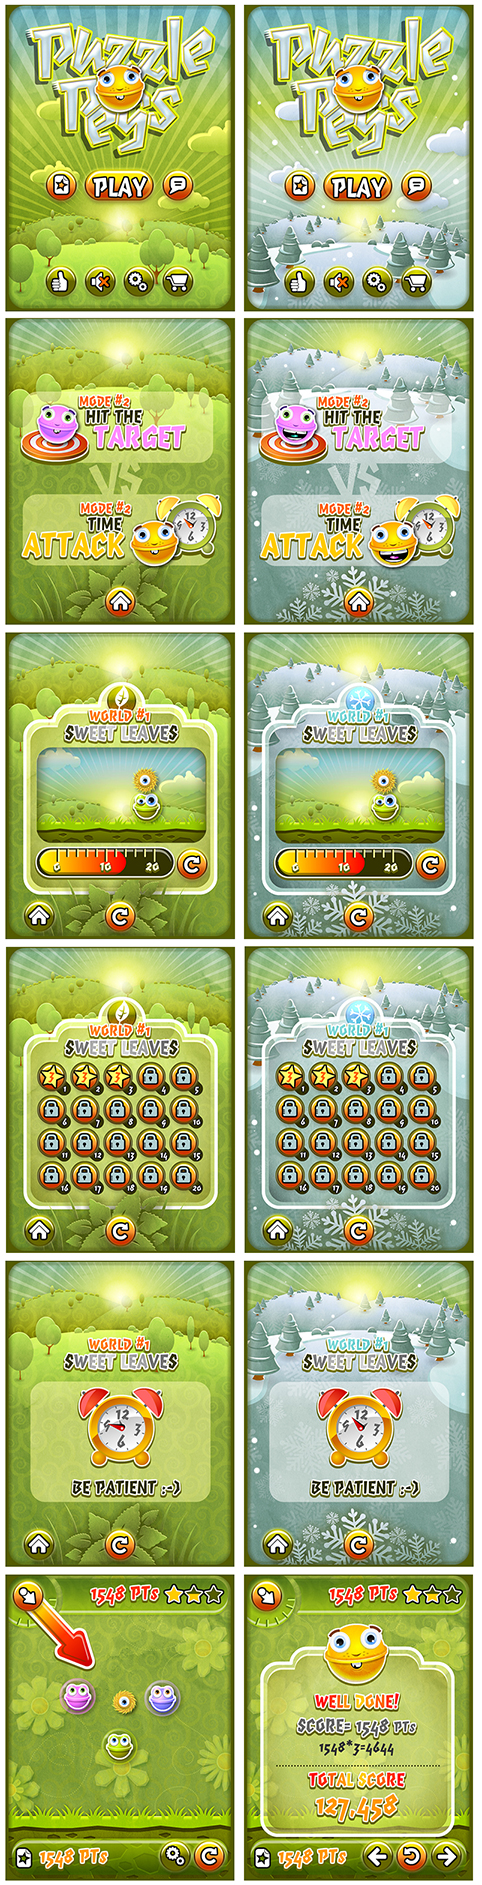 Most of the game UIs, shown in both available environments